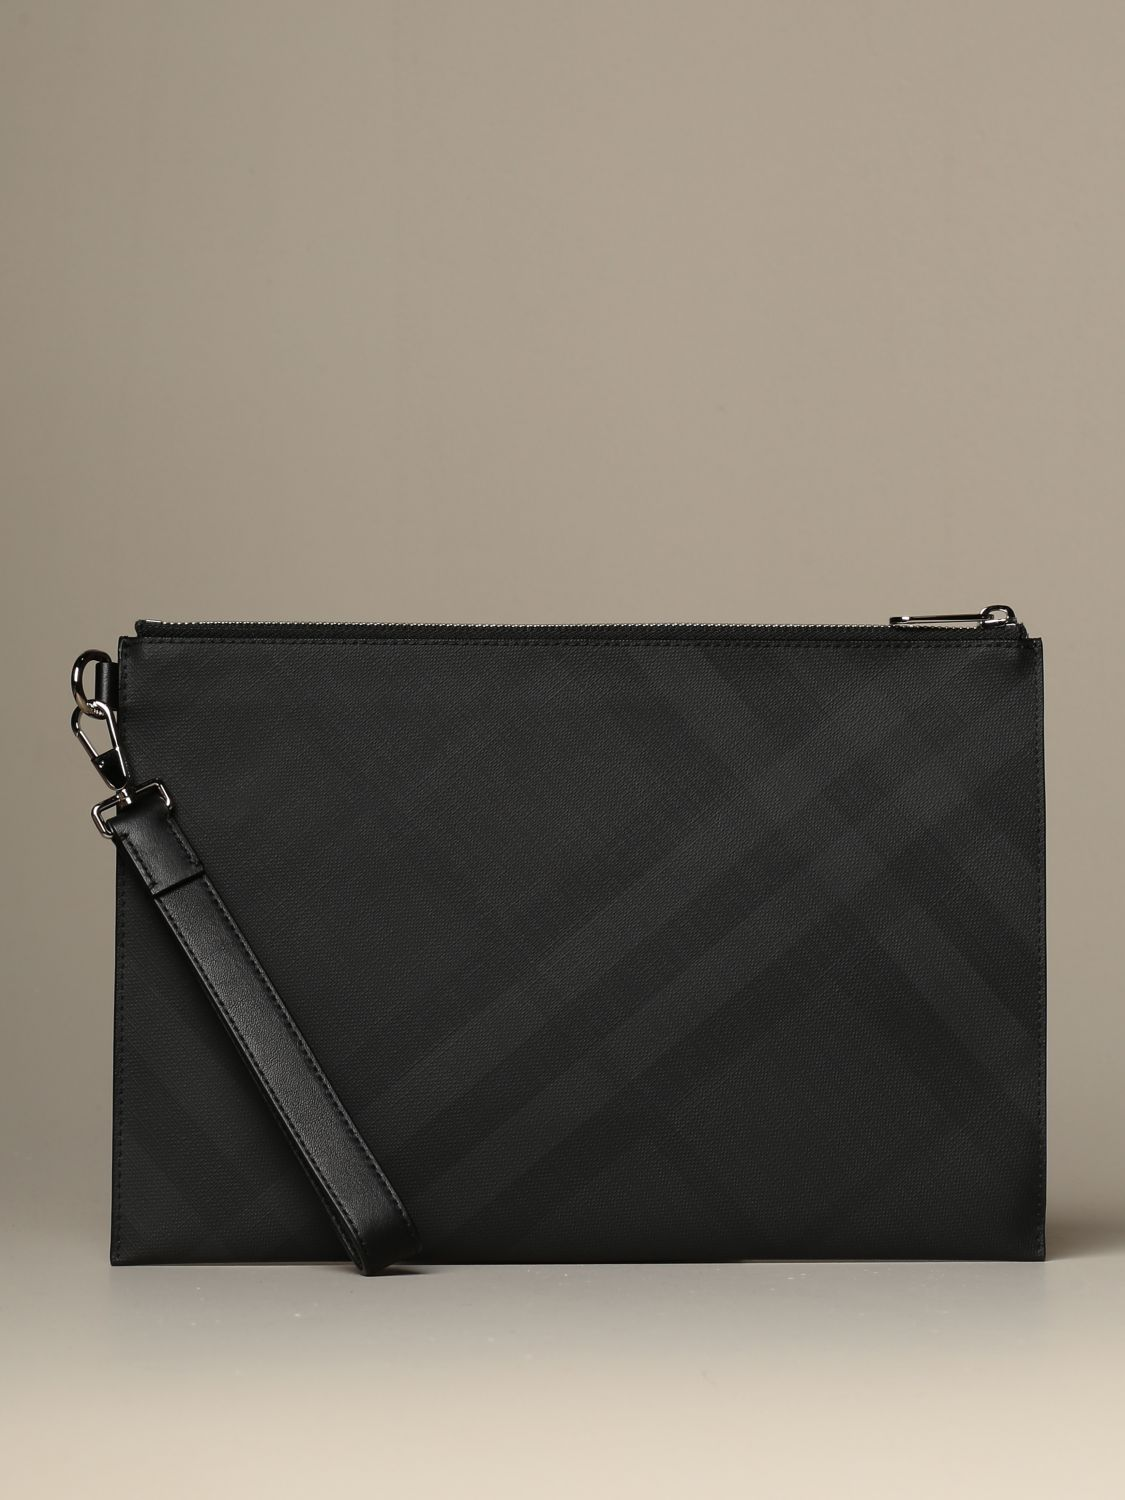 Wallet Burberry: Burberry pochette with London check motif lead 1